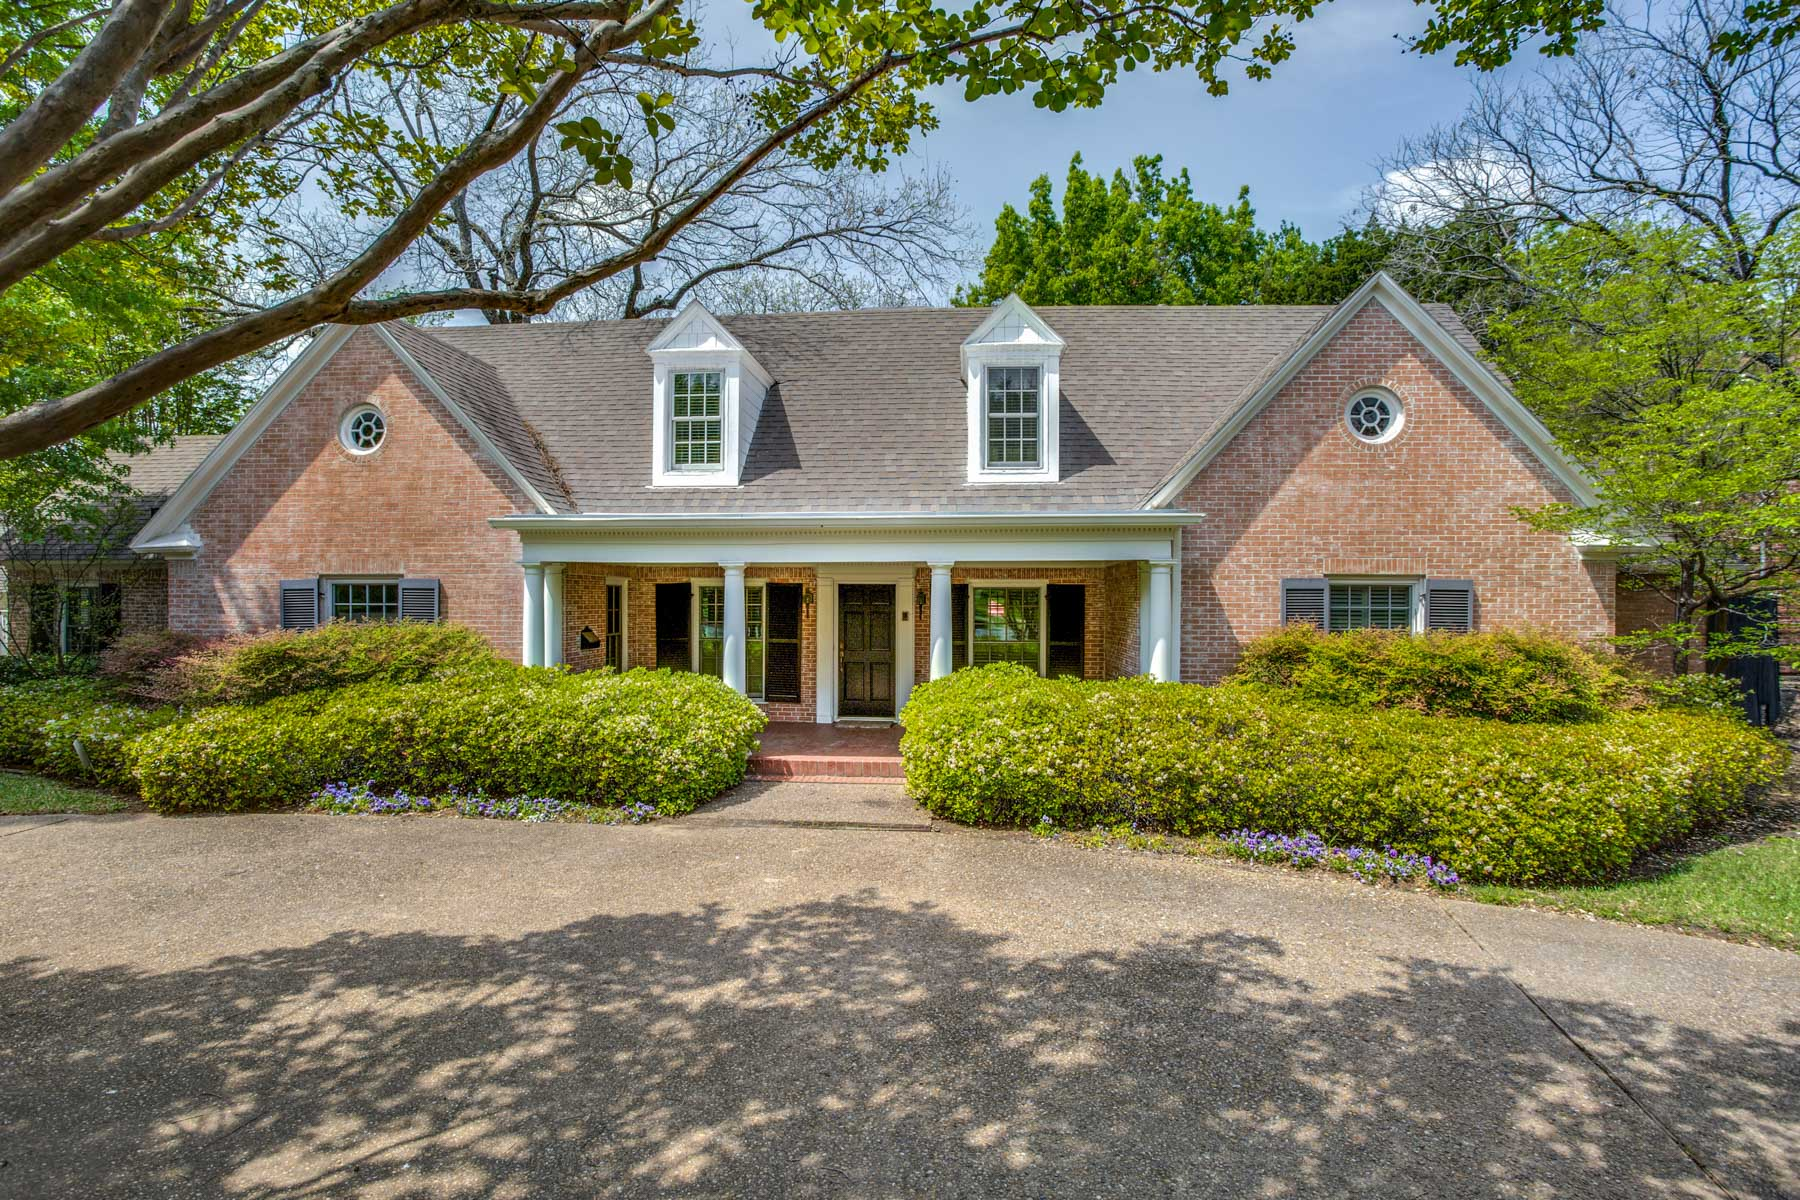 Single Family Home for Sale at Exceptional Opportunity on Bluffview's Horseshoe Trail 5150 Horseshoe Trail, Dallas, Texas, 75209 United States